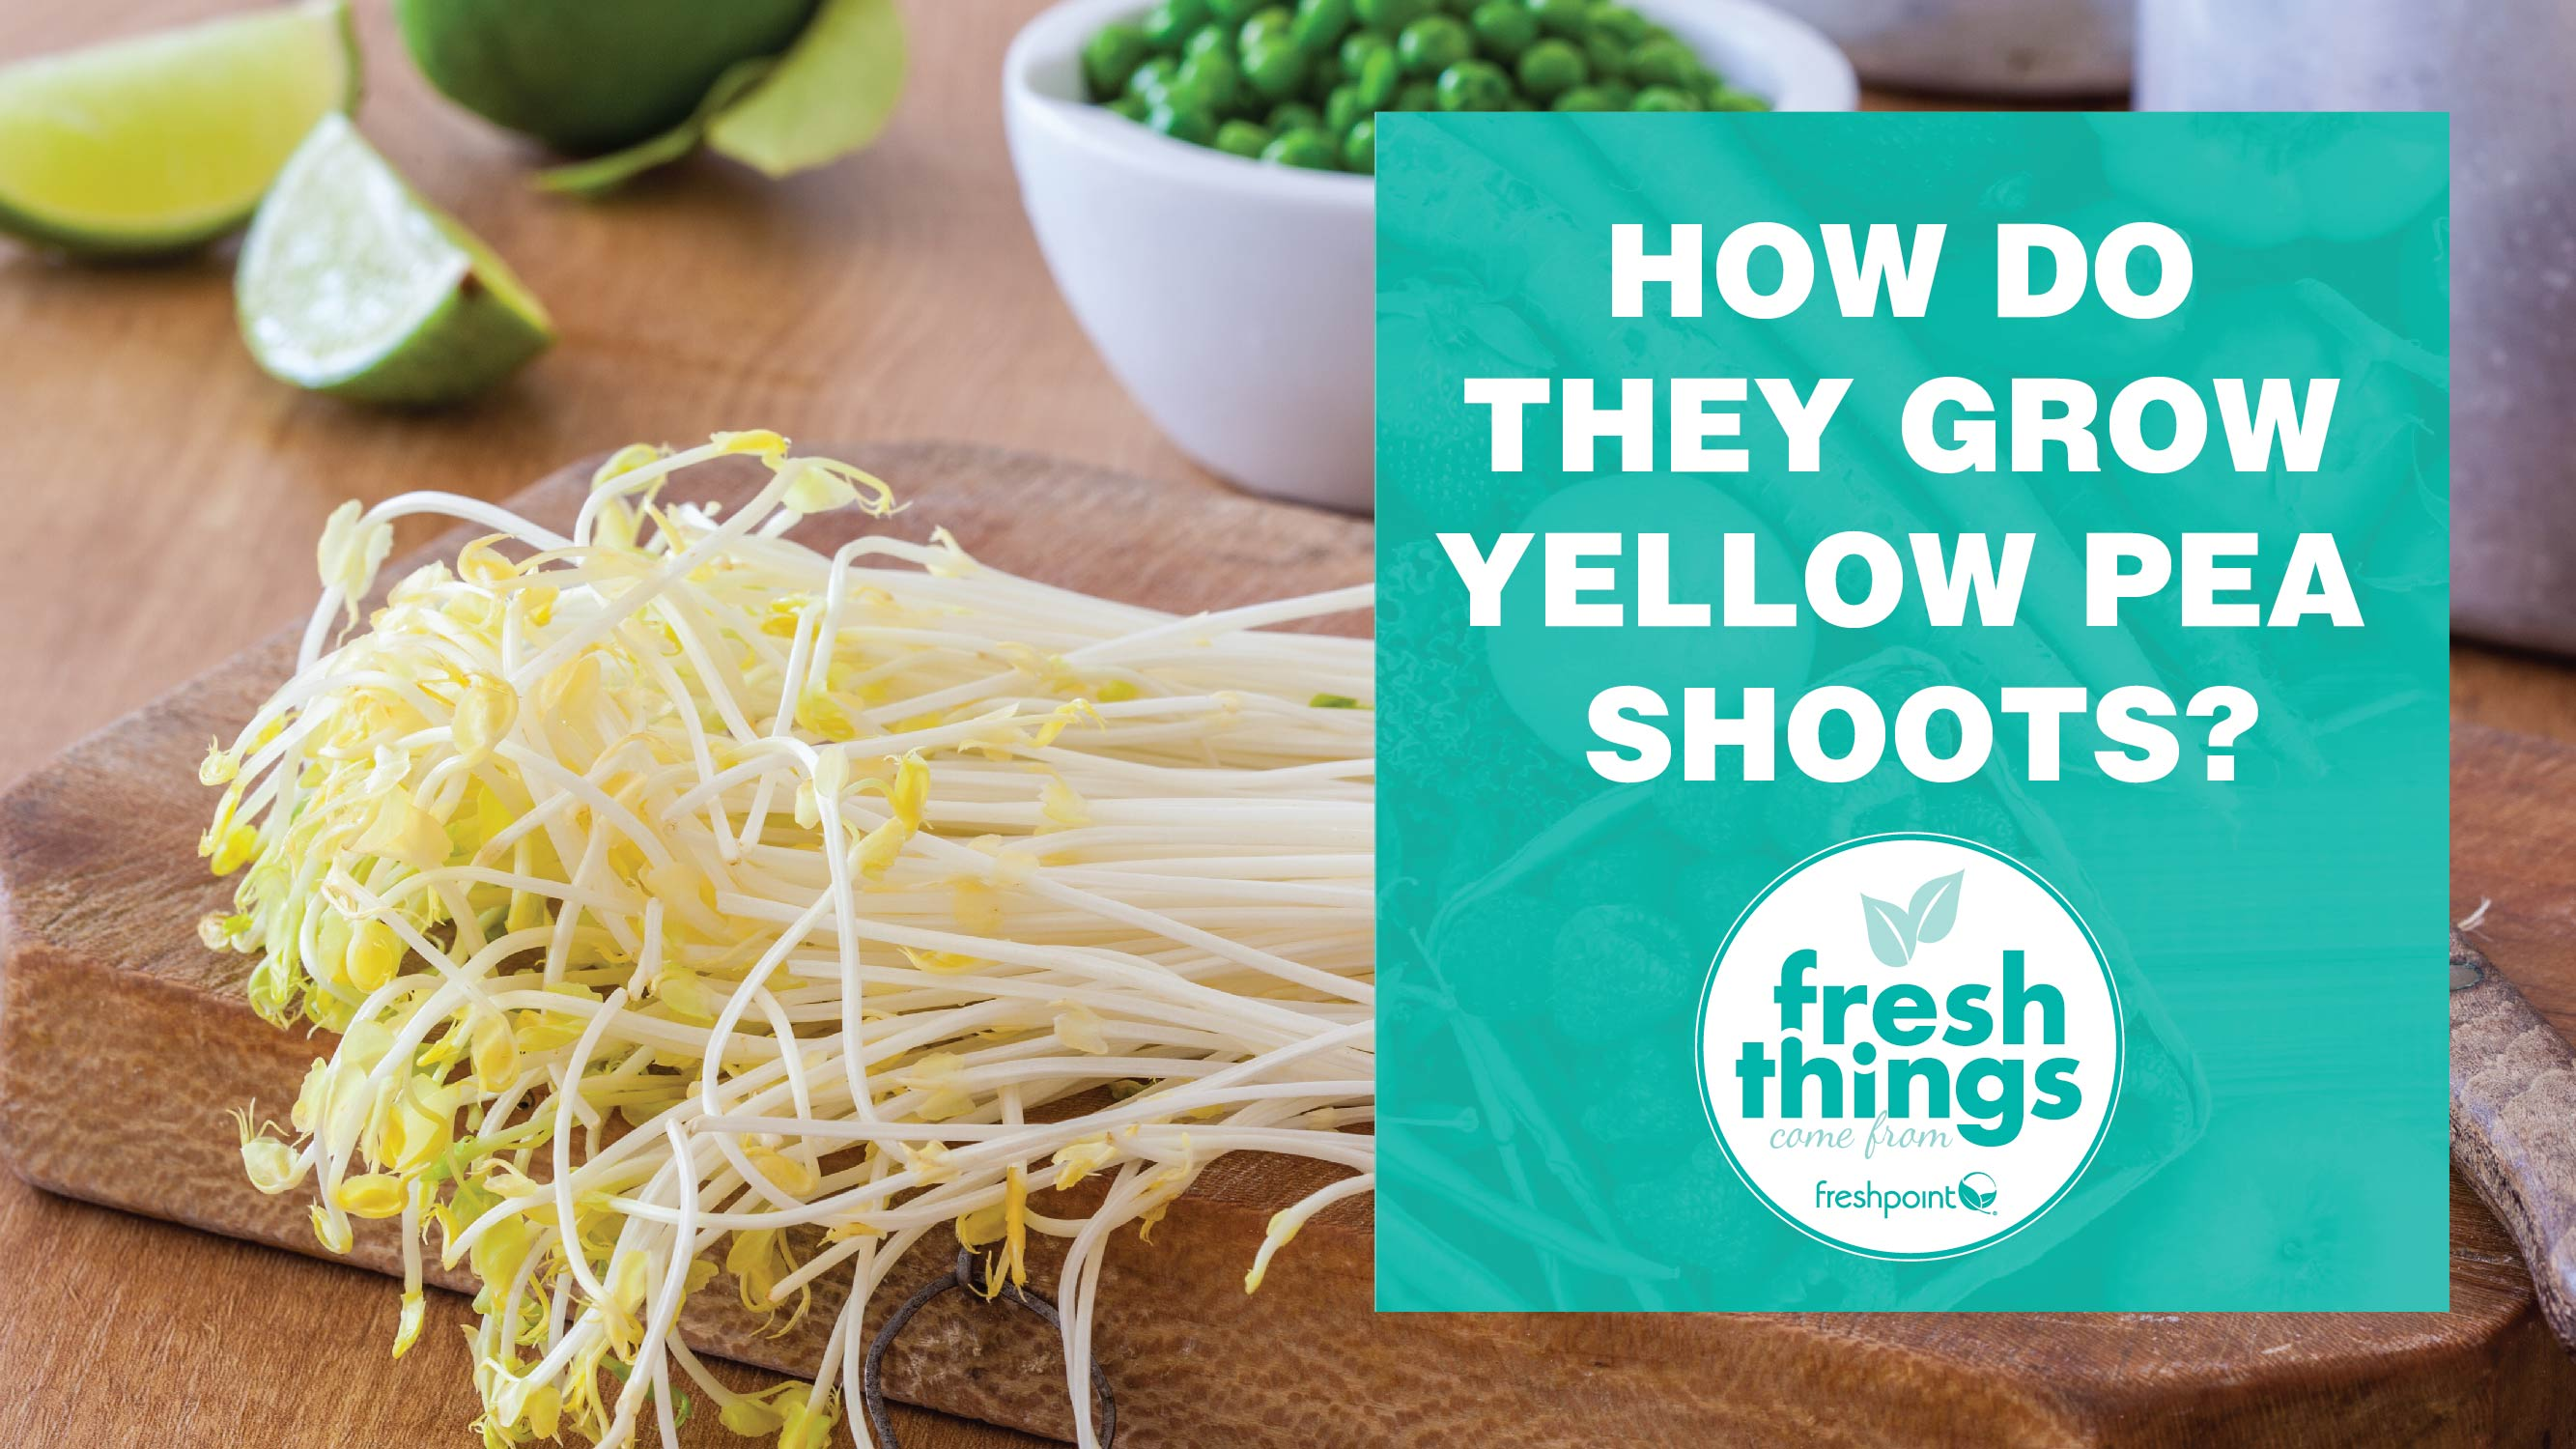 freshpoint-produce-yellow pea shoots